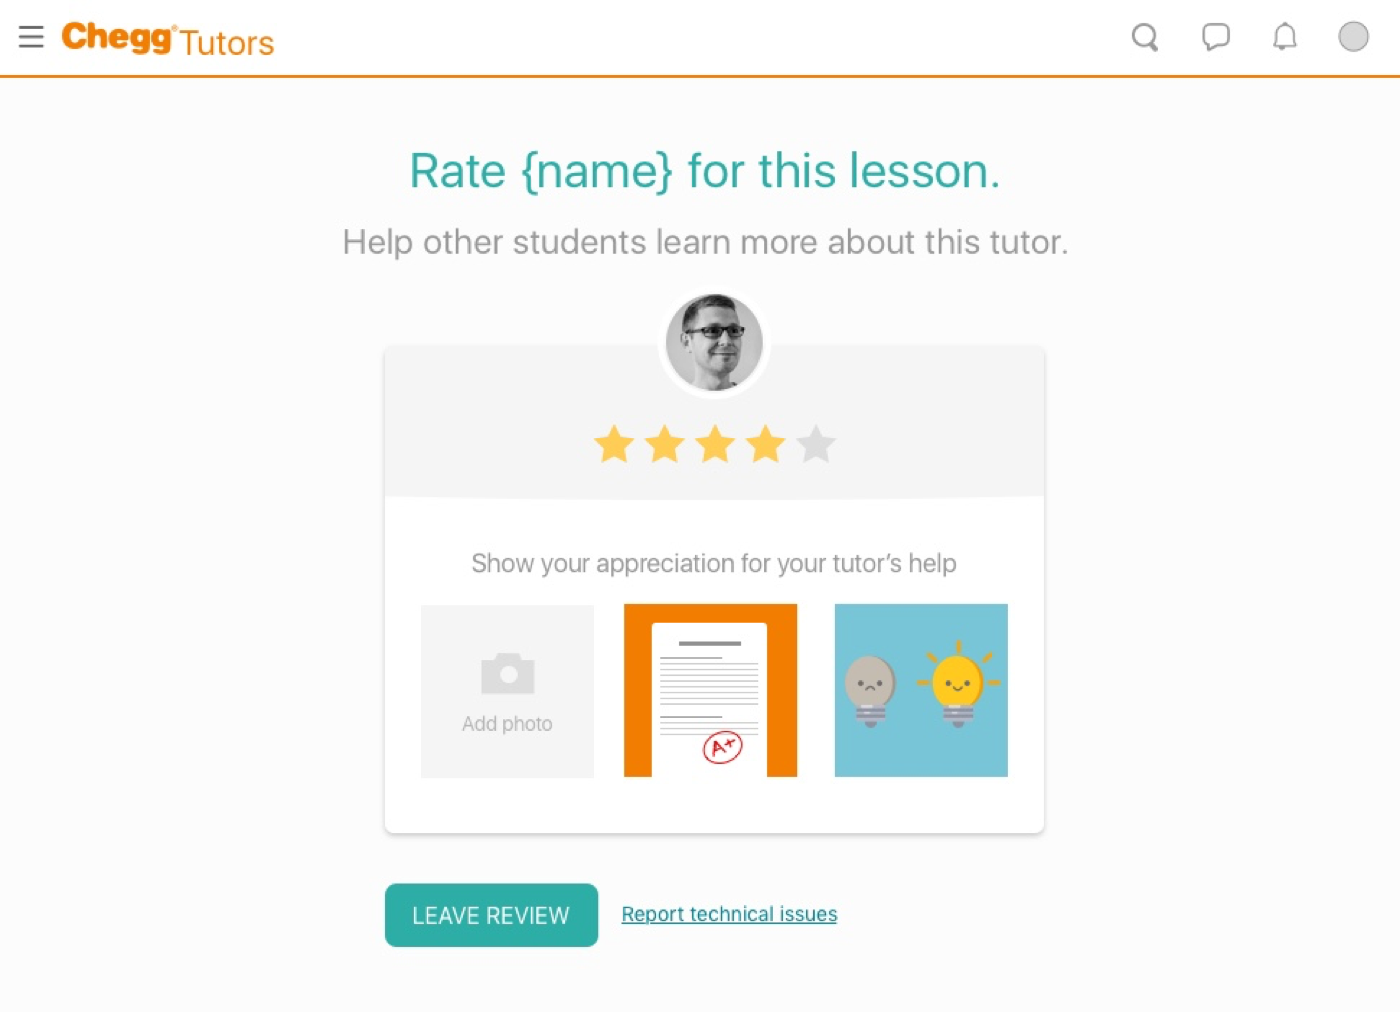 a future state - Instead of adding subcategories to dig into what worked well and didn't in a student review, it'd be interesting to test a more interactive way of getting in-depth feedback, such as adding a photo of your grade or a selfie of how much happier you are after getting help.Also think it'd be a good next step of how to explore the five-star interactions and simplifying with less text.